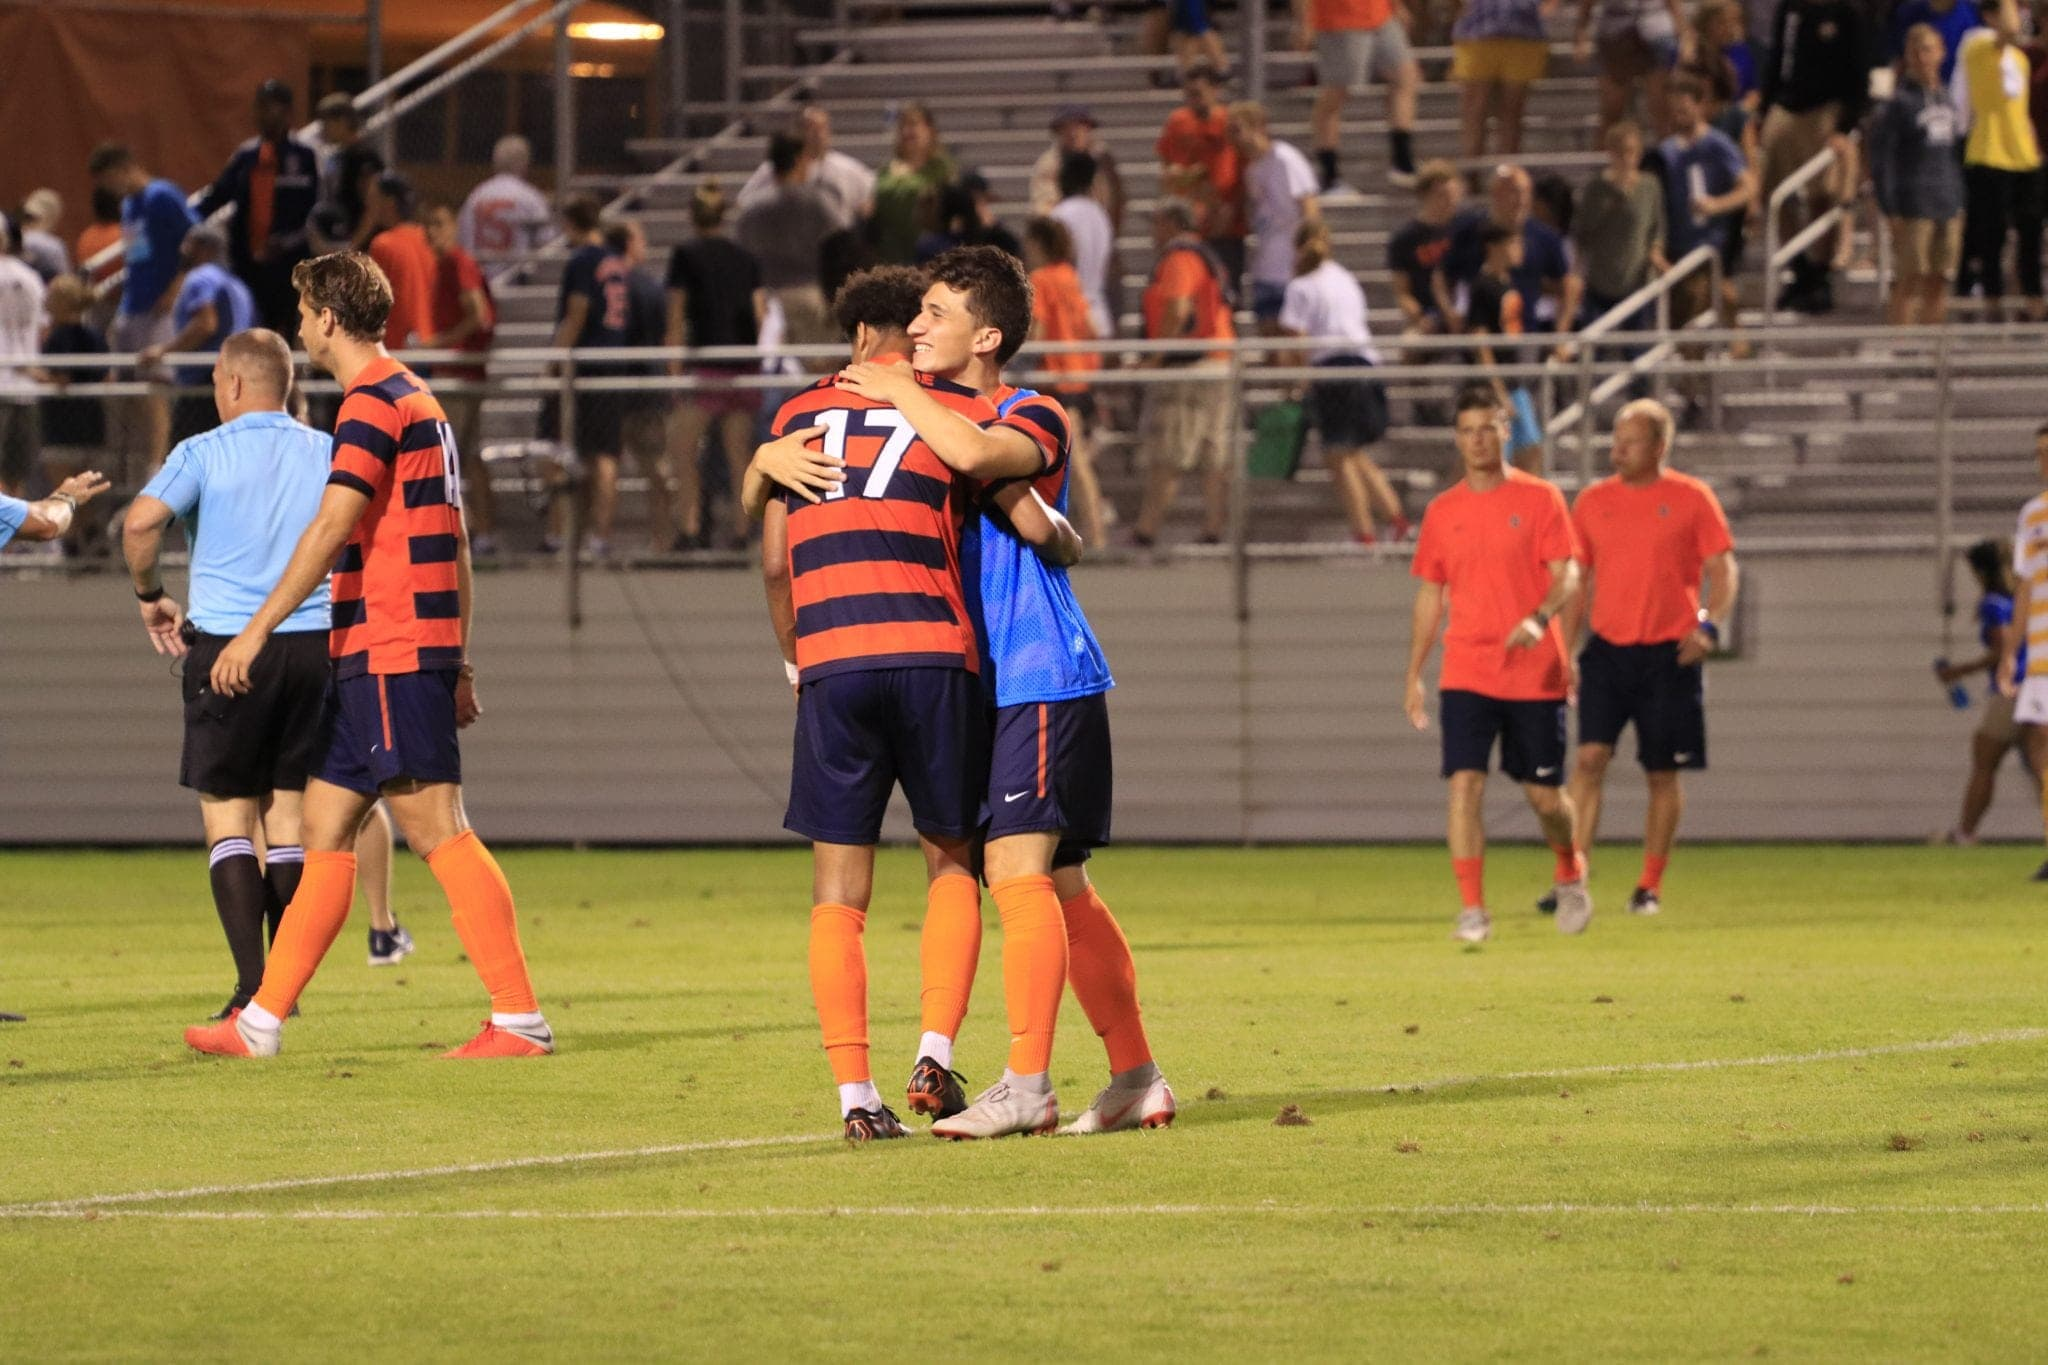 Syracuse sophomore Tajon Buchanan is embraced by a teammate after SU's men's soccer win over Hofstra on Sept. 2, 2018